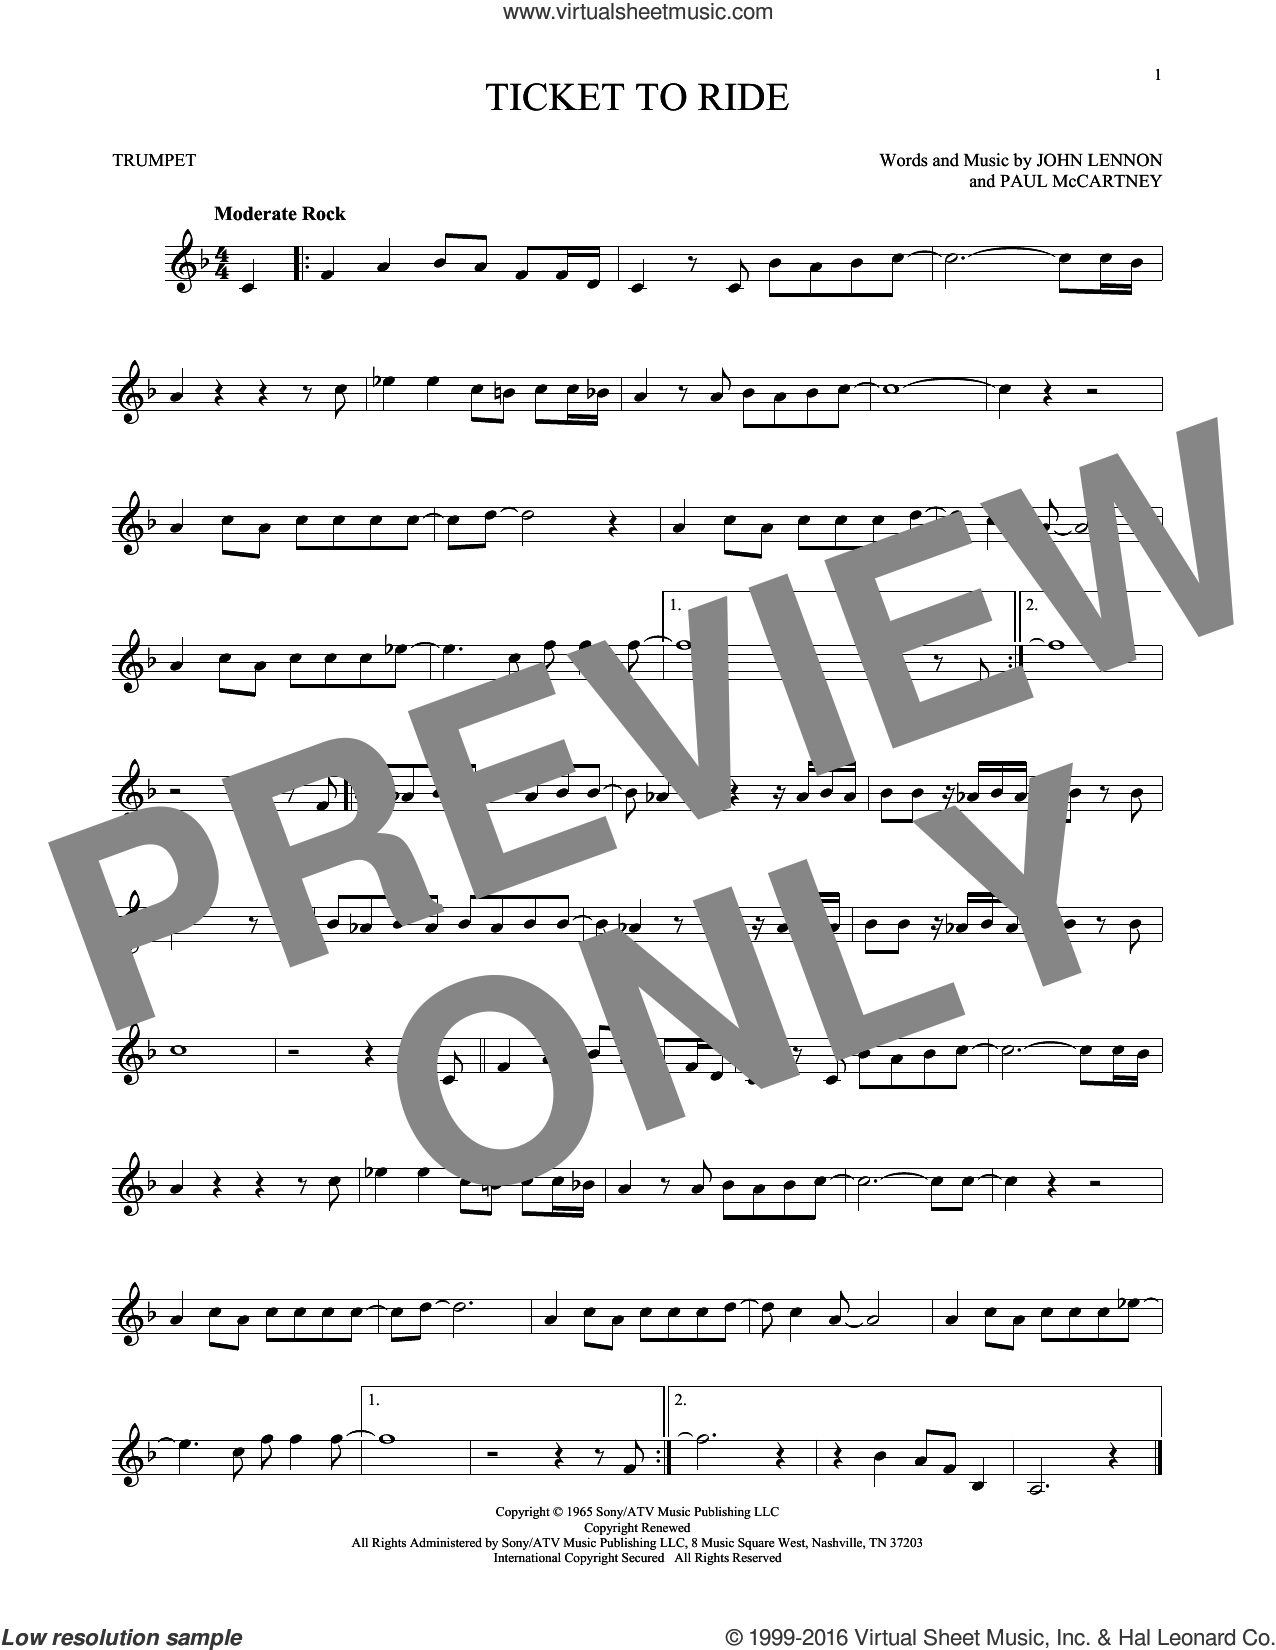 Ticket To Ride sheet music for trumpet solo by The Beatles, John Lennon and Paul McCartney, intermediate skill level